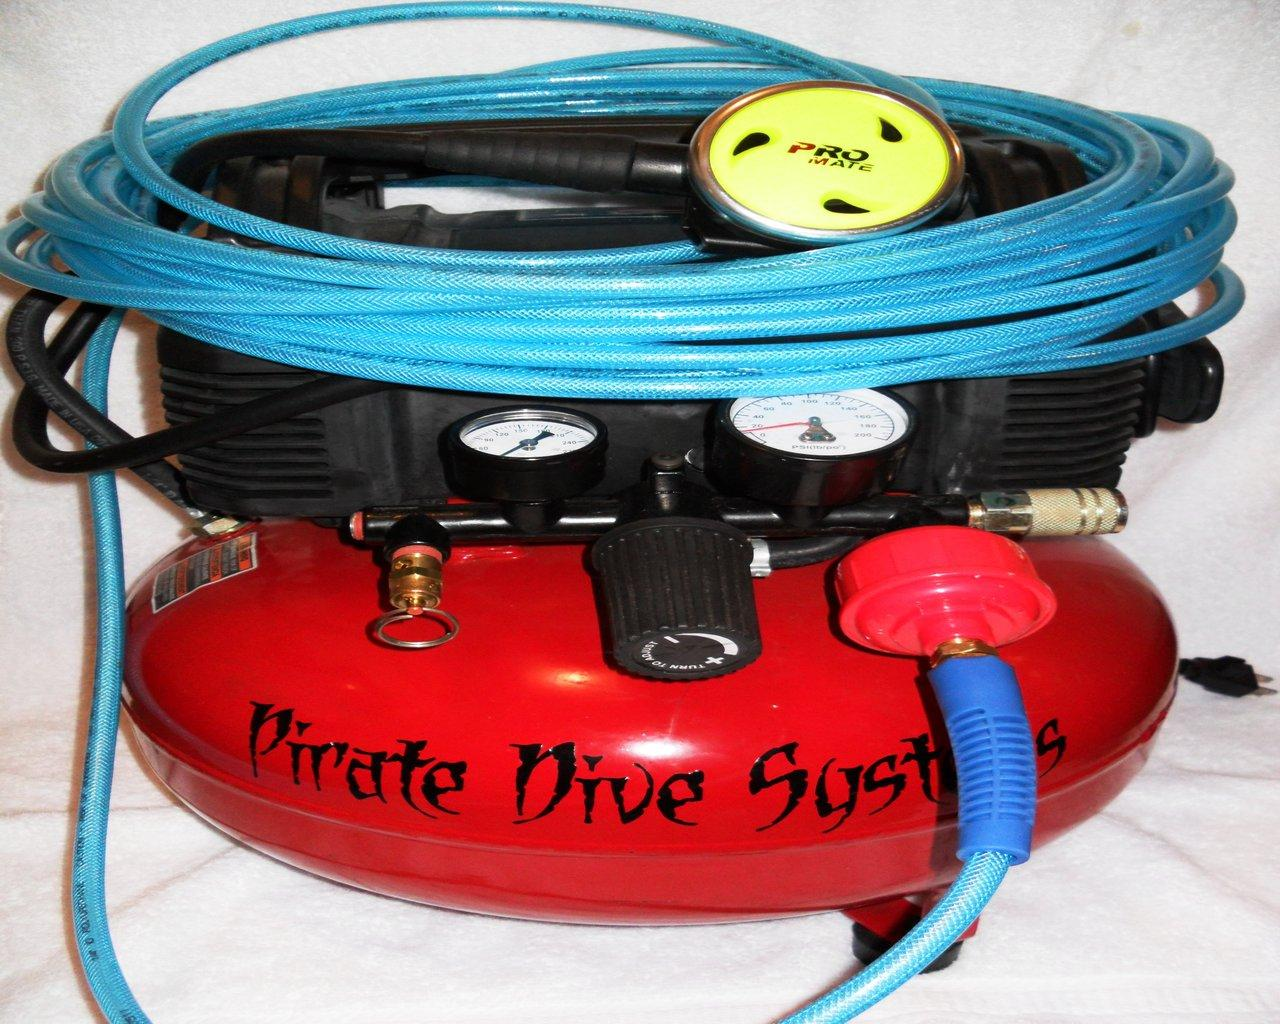 Pirate dive systems tankless hookah diving system - Electric dive hookah ...